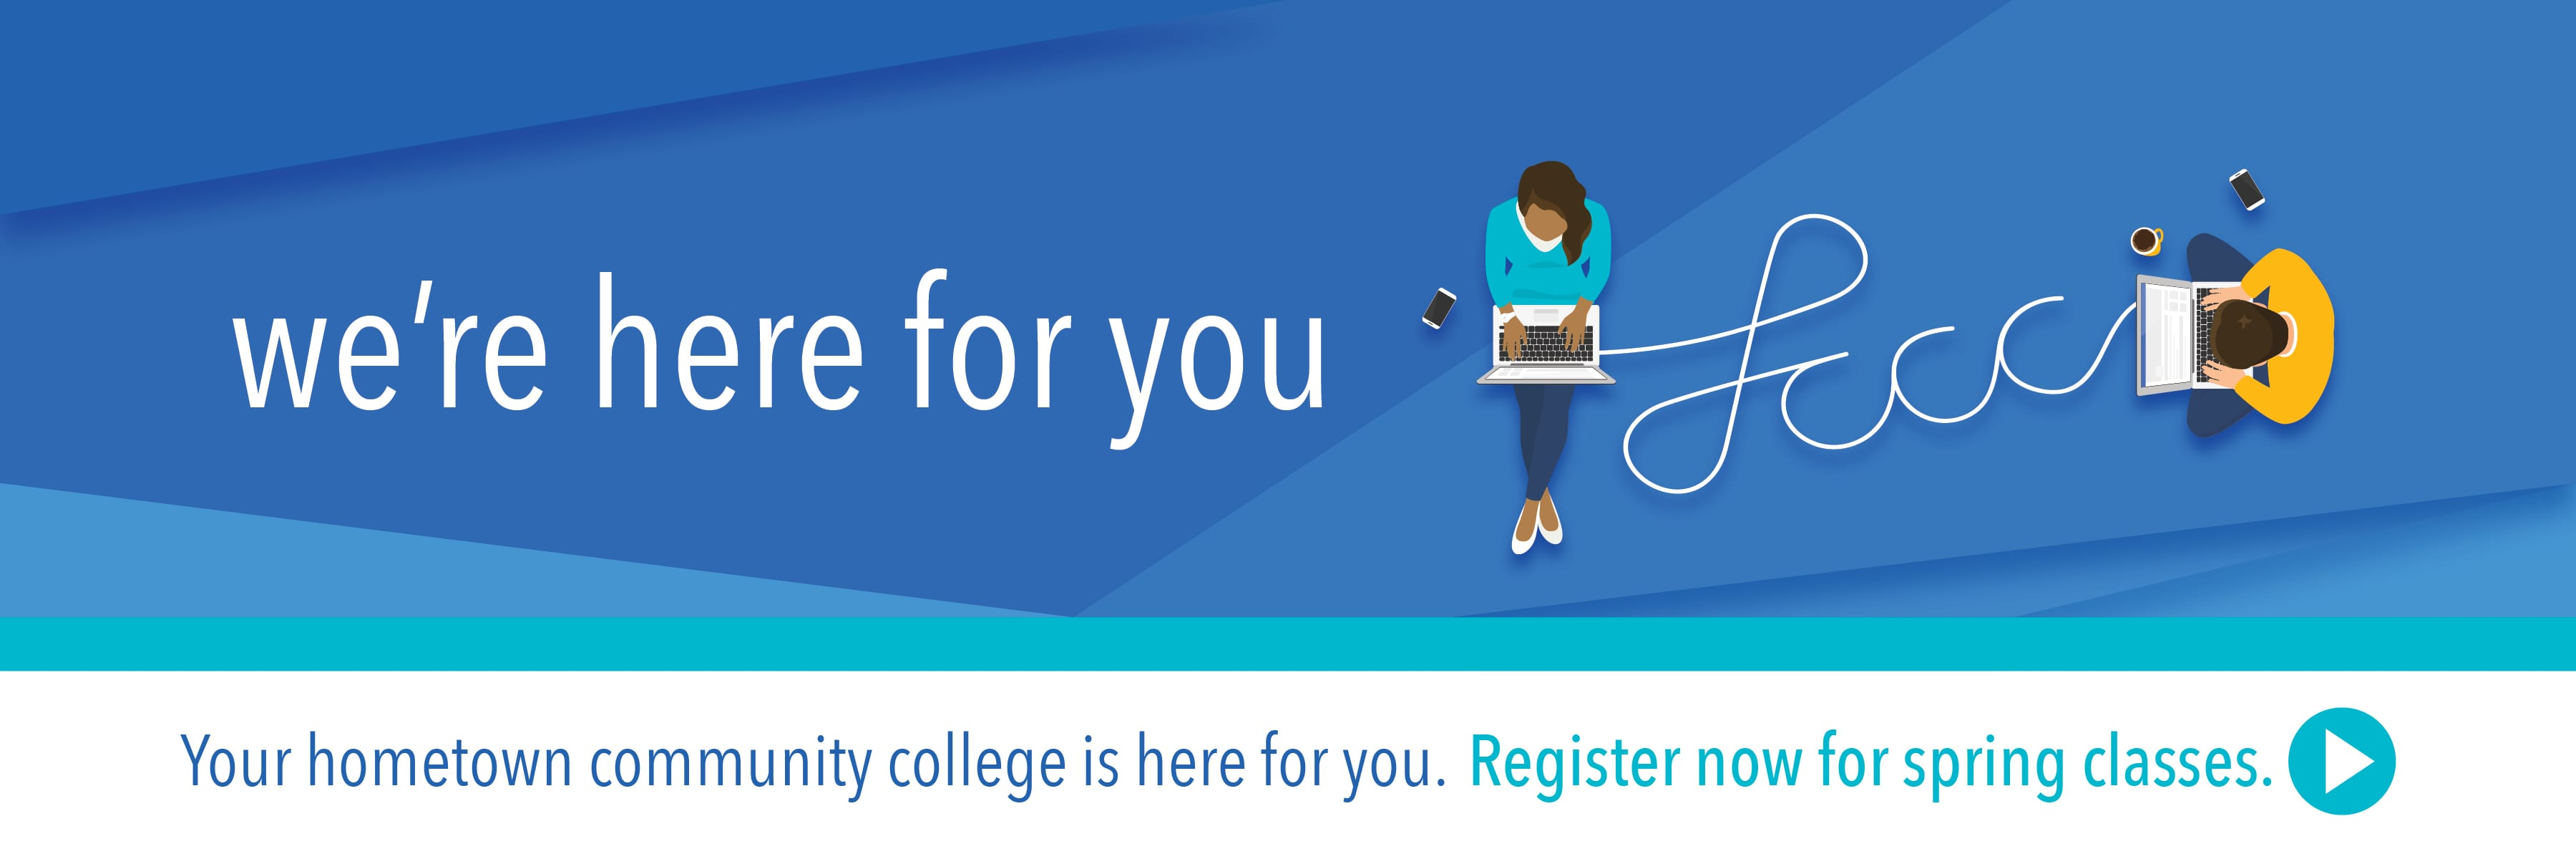 We're here for you. Register now for Spring classes